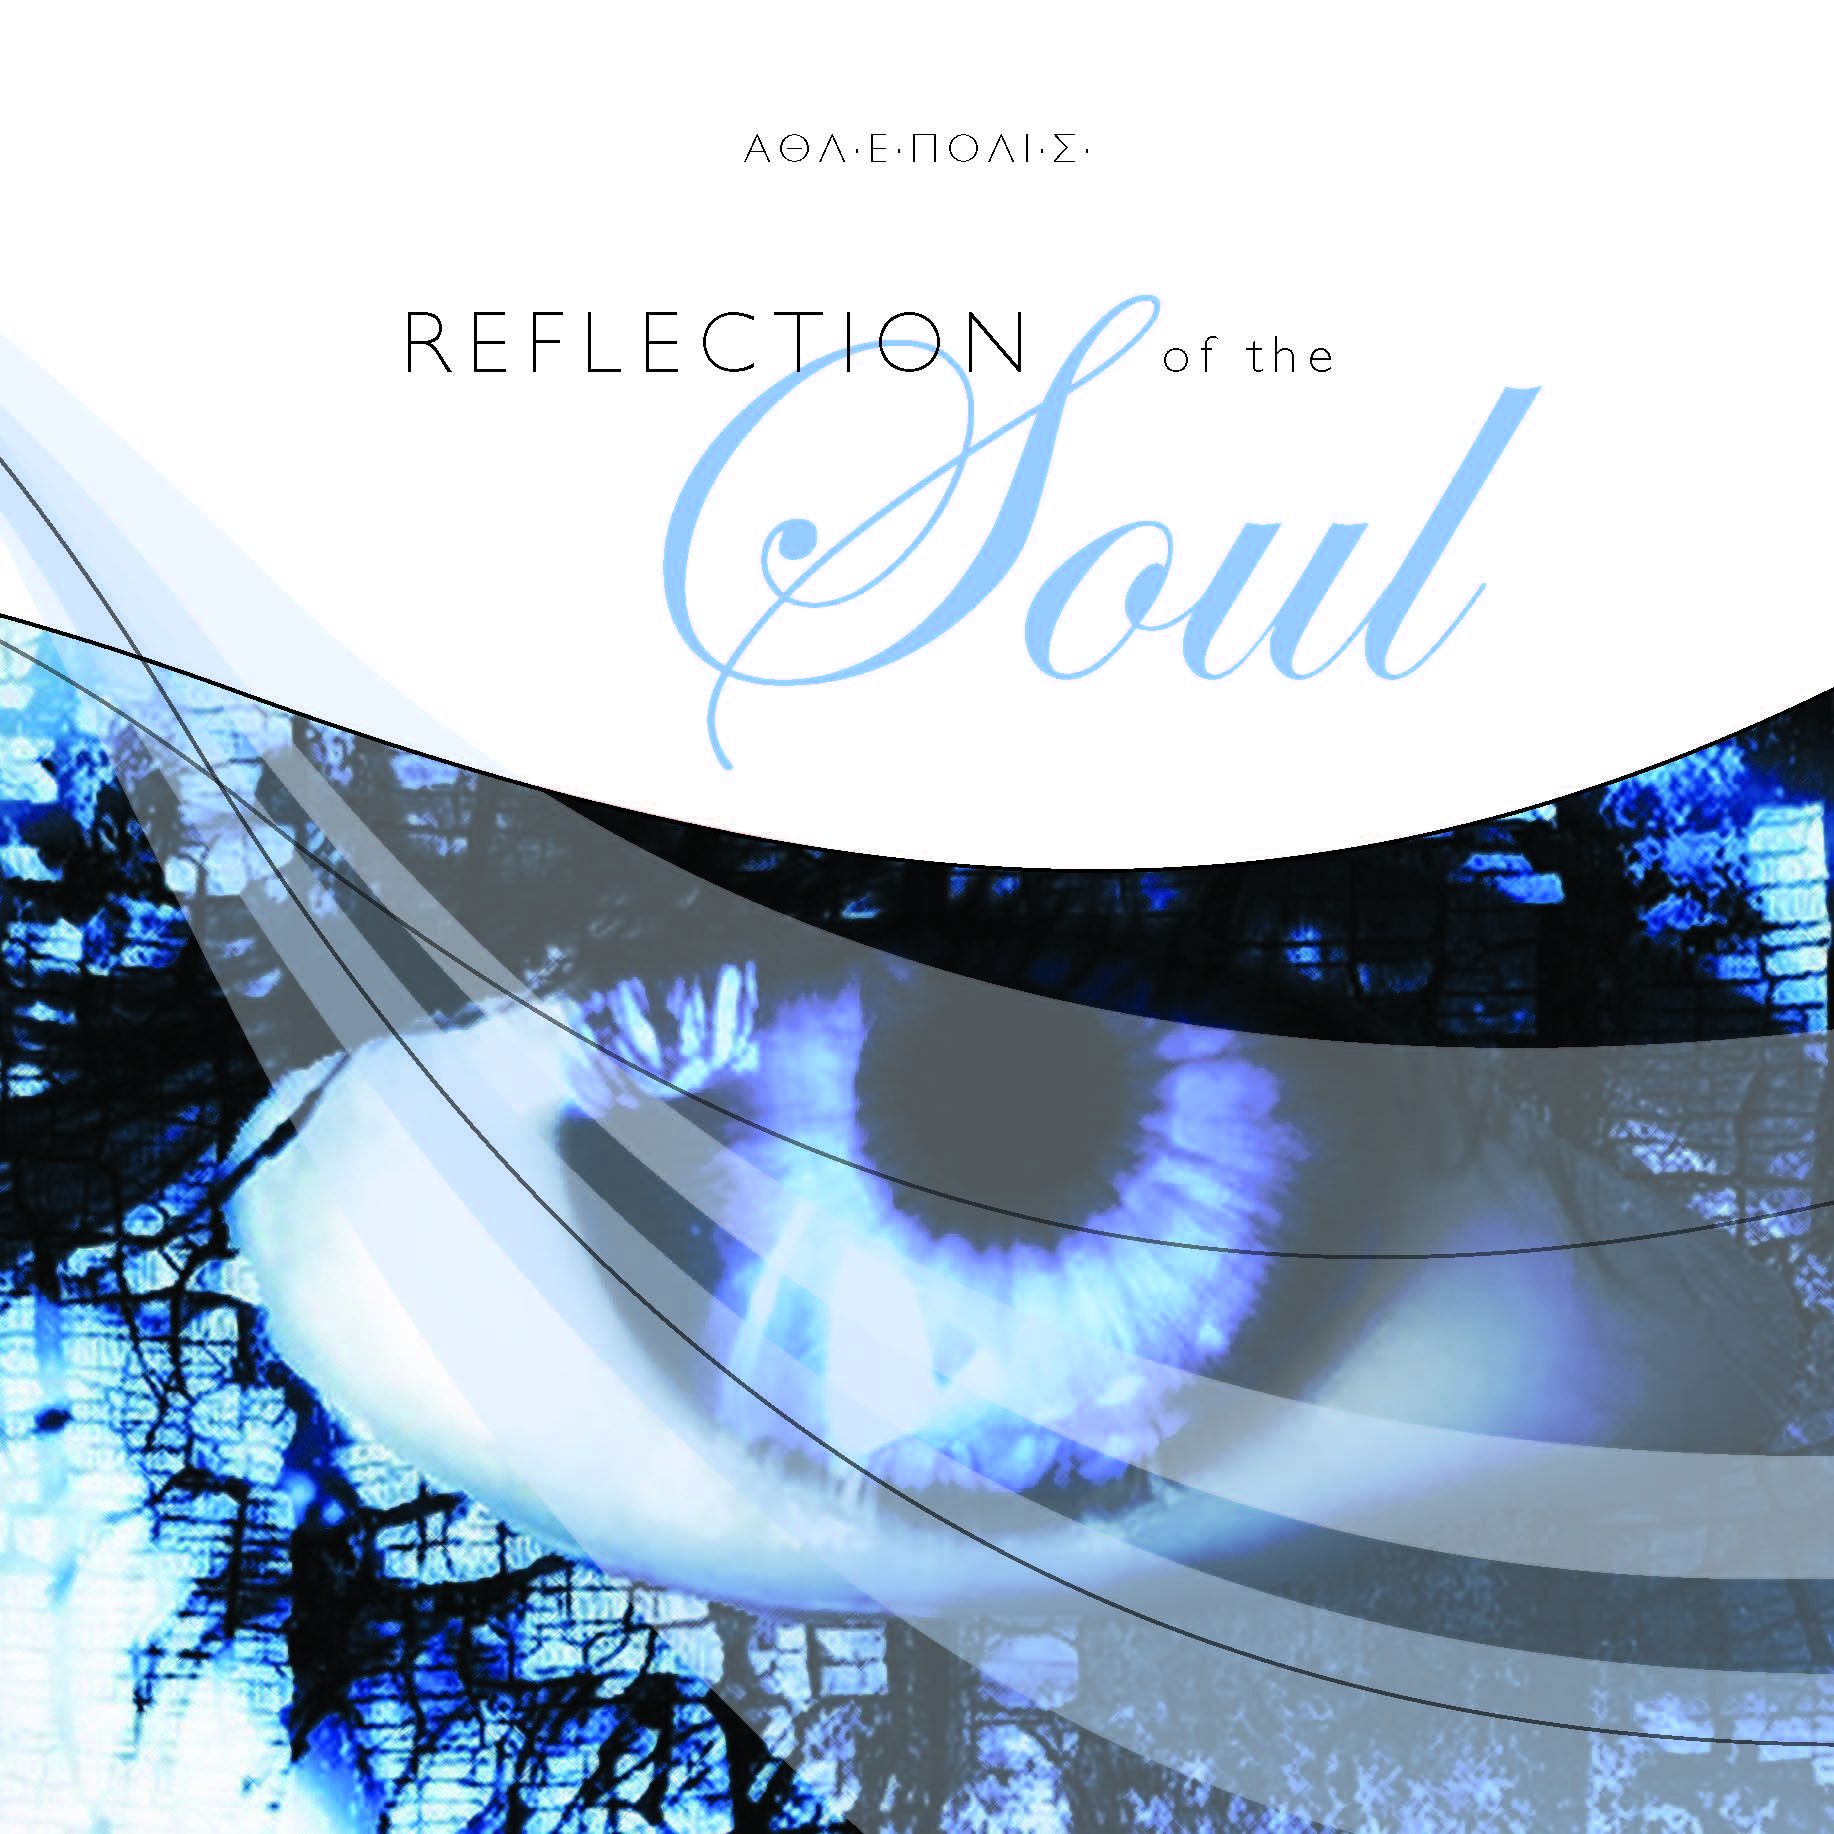 REFLECTION OF THE SOUL